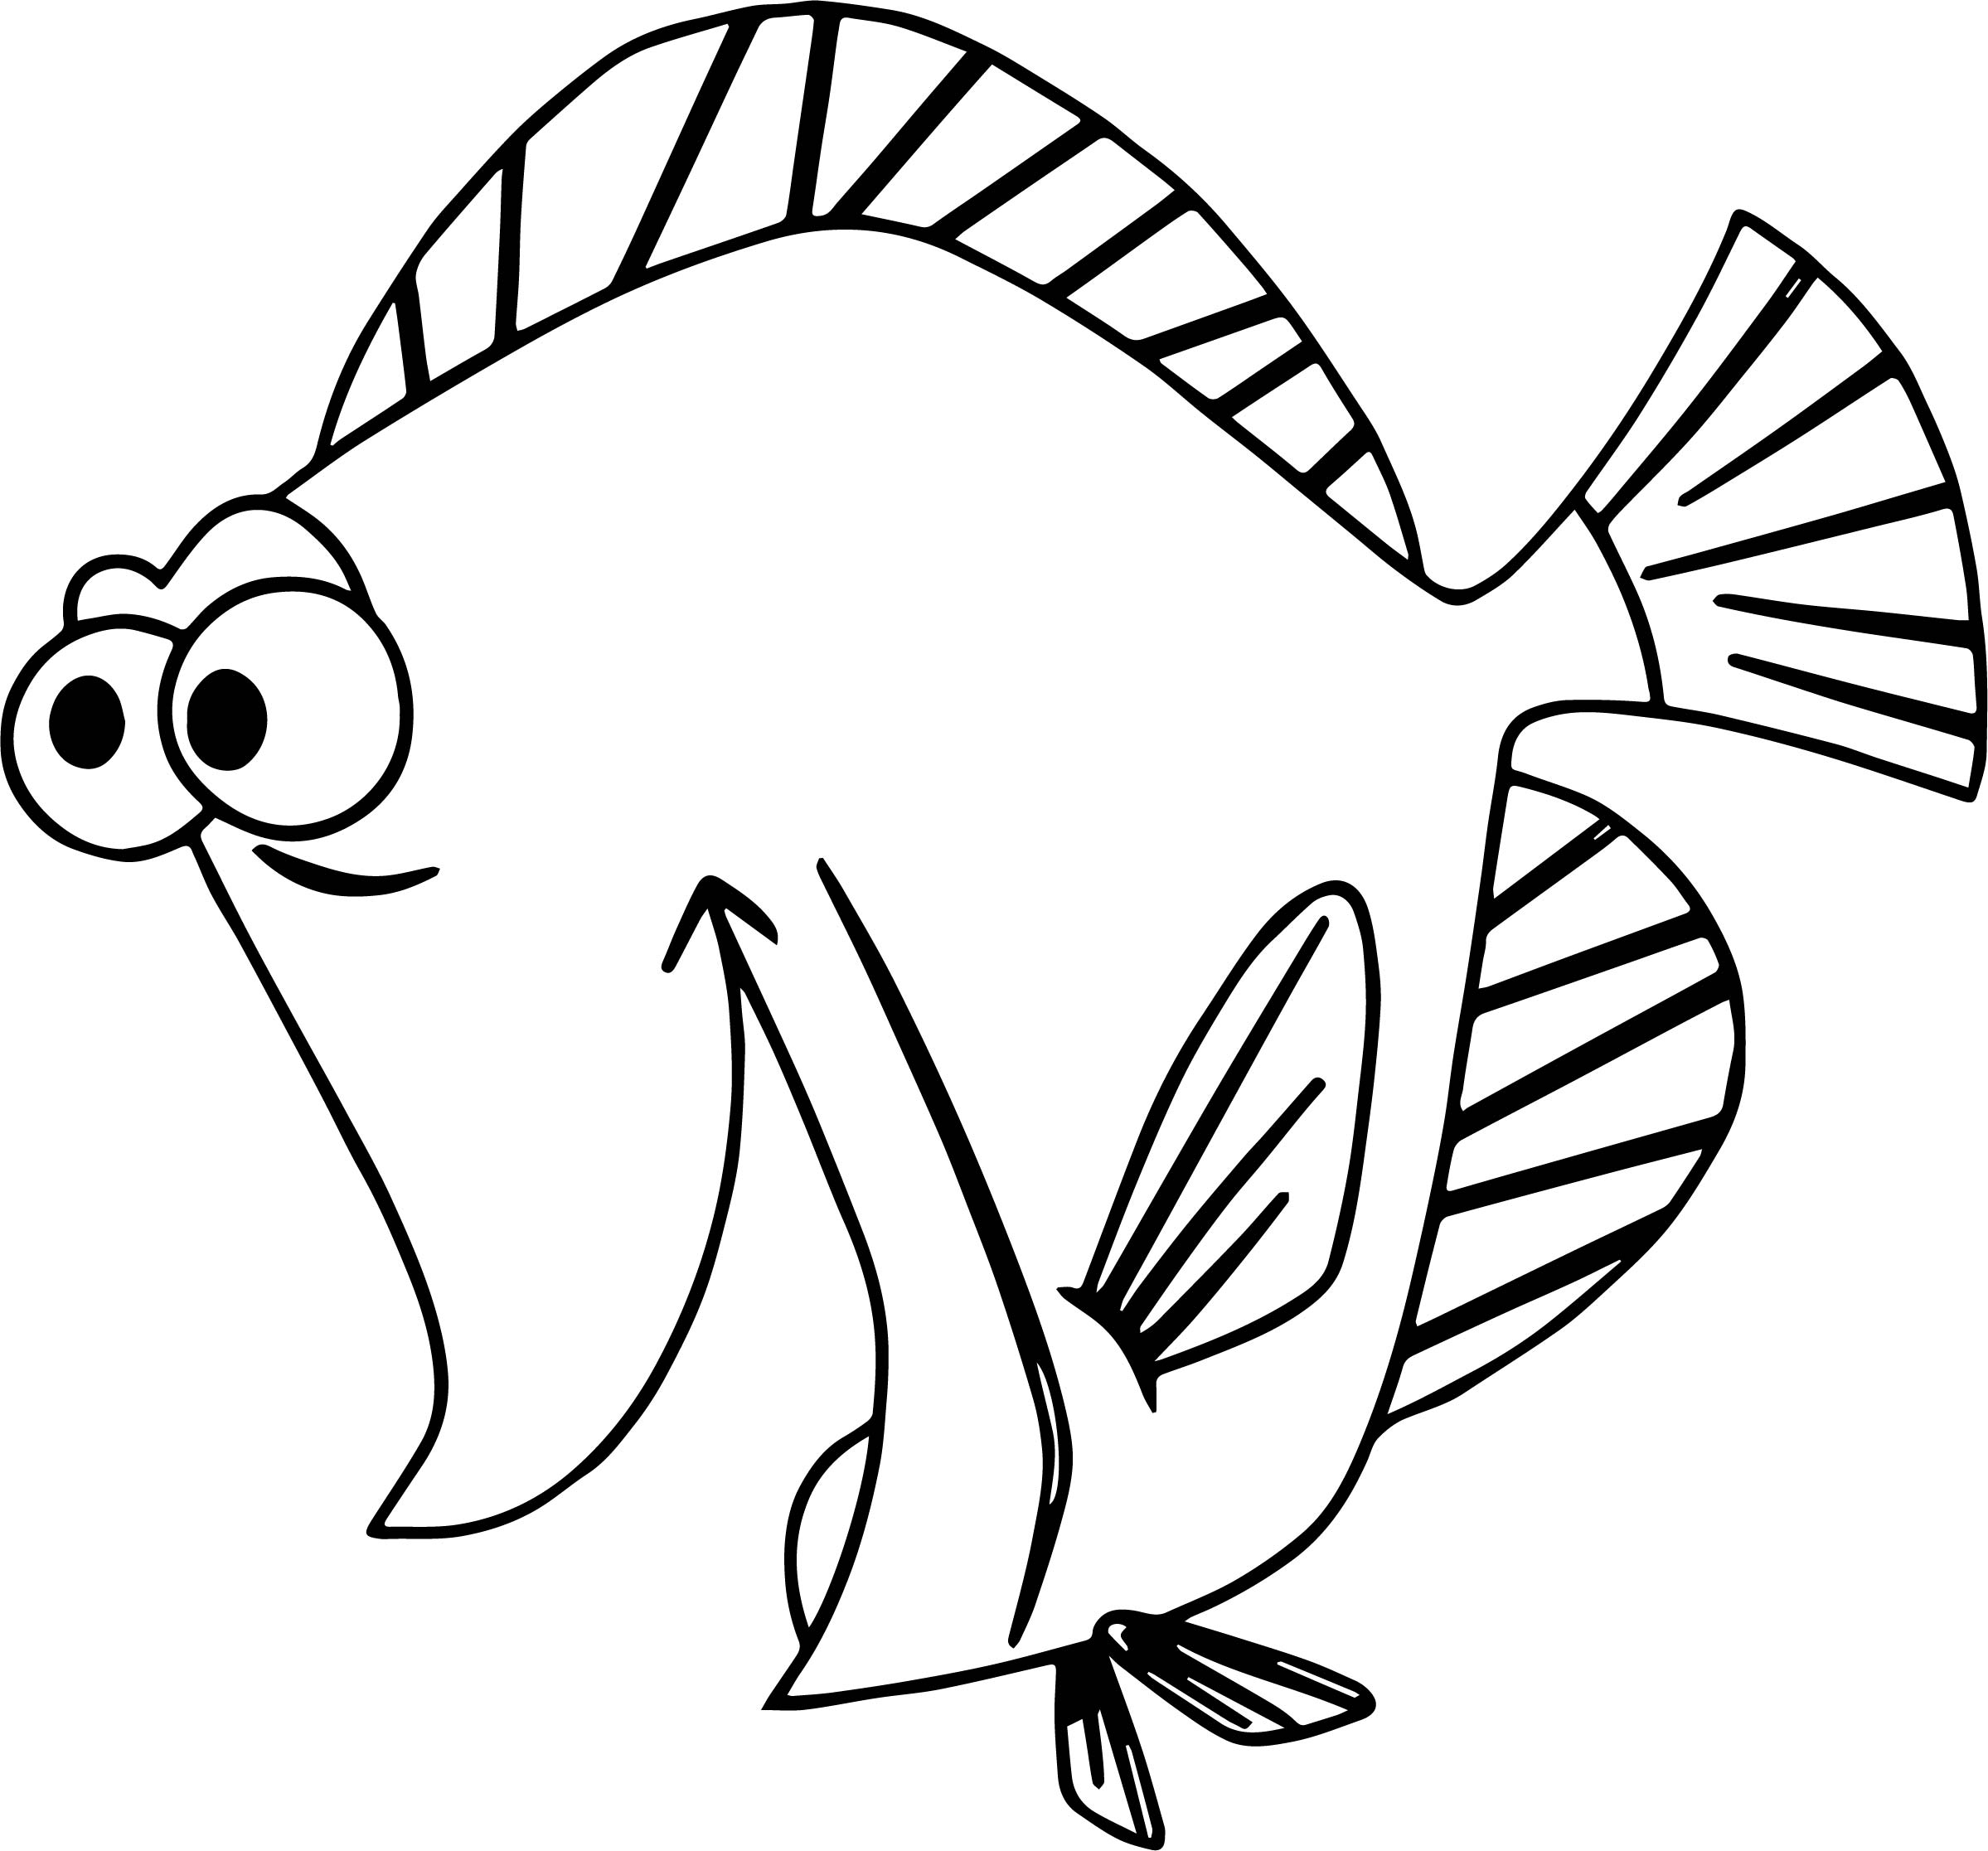 Disney Finding Nemo Bubbles Excited Coloring Pages Wecoloringpage